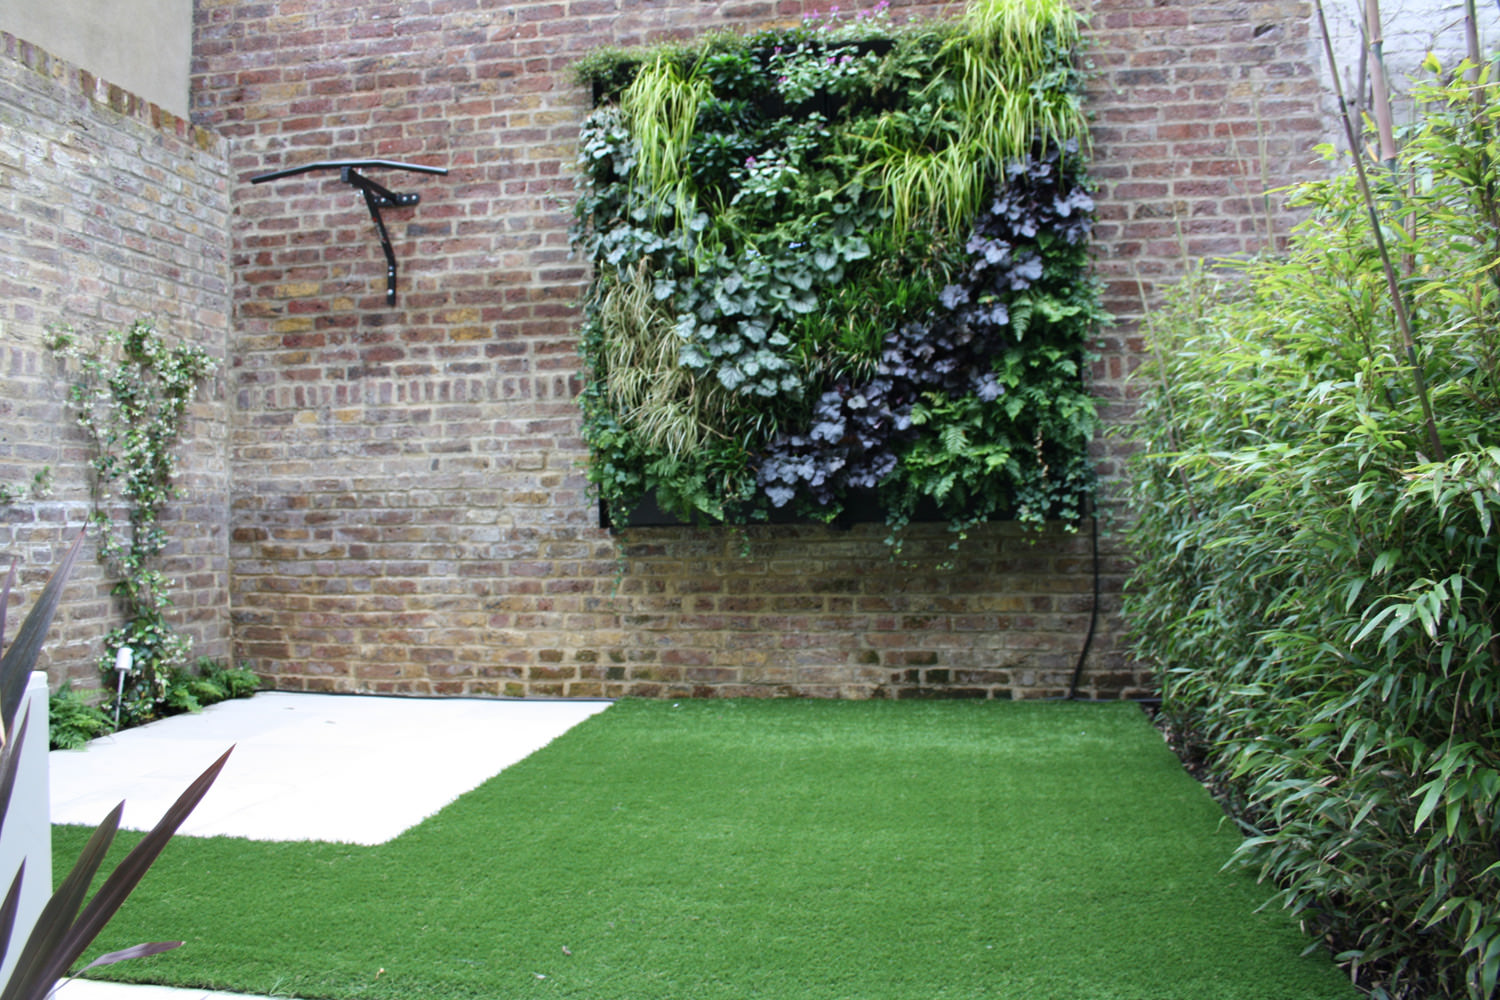 Top 10 london garden designs garden club london for Small garden ideas